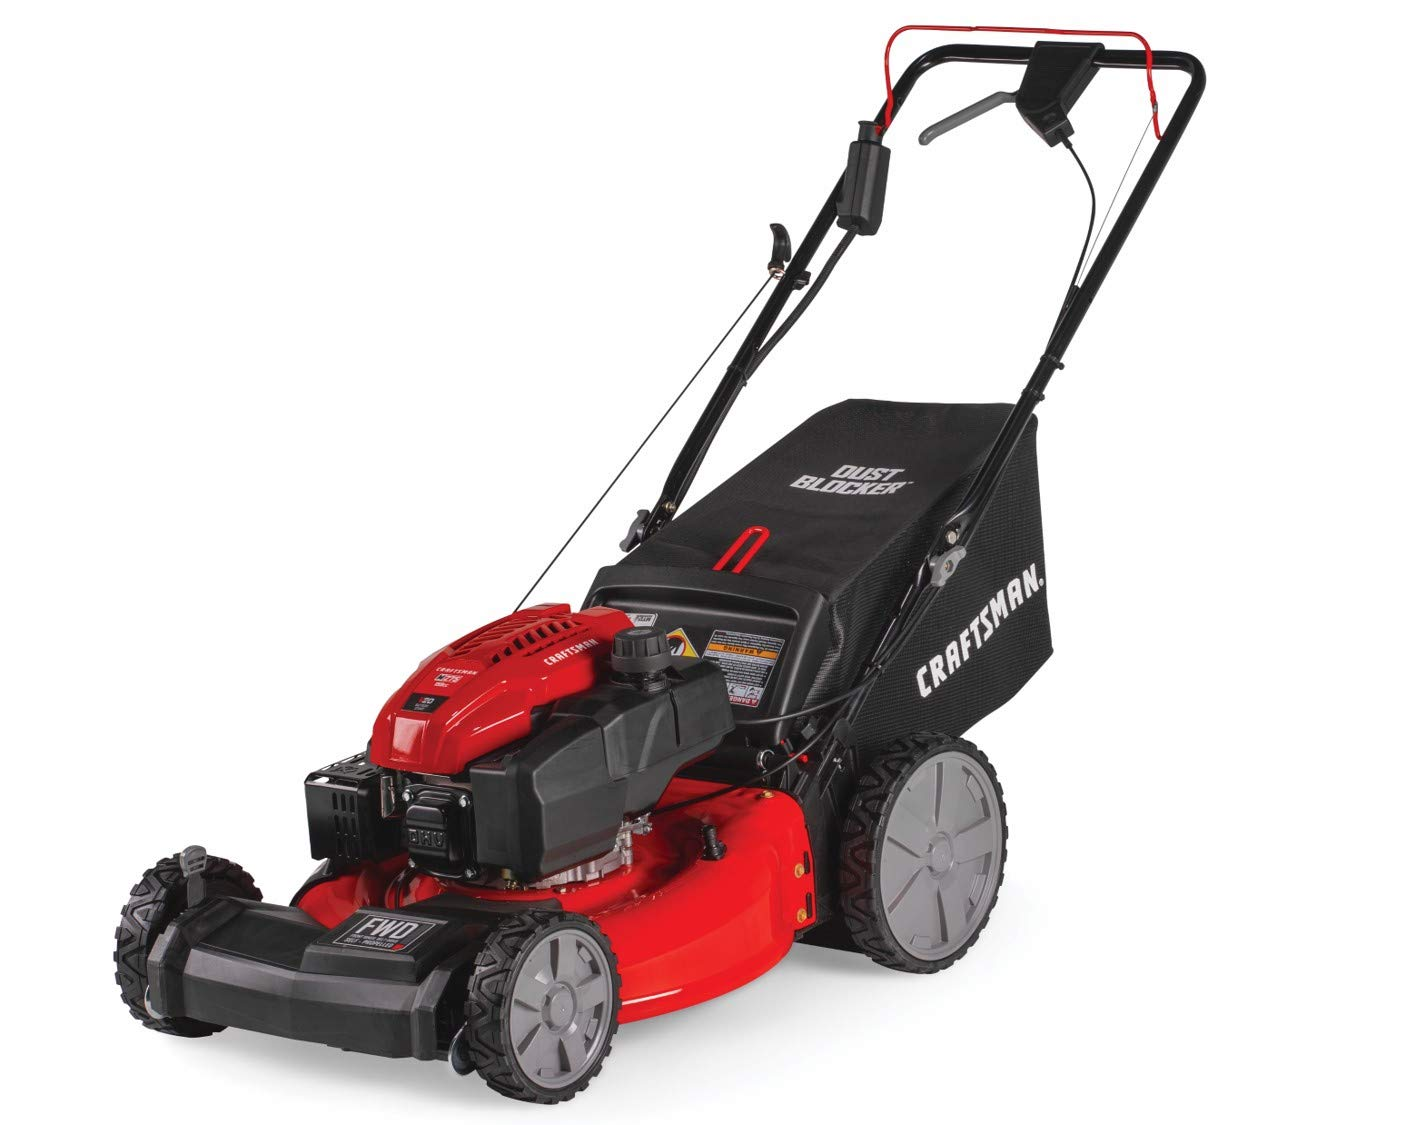 Craftsman M275 159cc 21-Inch 3-in-1 High-Wheeled  Self-Propelled FWD Gas Powered  Lawn Mower with Bagger 1 POWERFUL 159CC OHV GAS ENGINE: Powerful gas engine with 21-inch cutting deck to trim grass in one quick pass. 3-IN-1 CAPABILITIES: Unit has side discharge, rear discharge, and mulching capabilities. FRONT WHEEL DRIVE AND SELF-PROPELLED: Move around your yard with less effort at the propulsion speed of your choice.